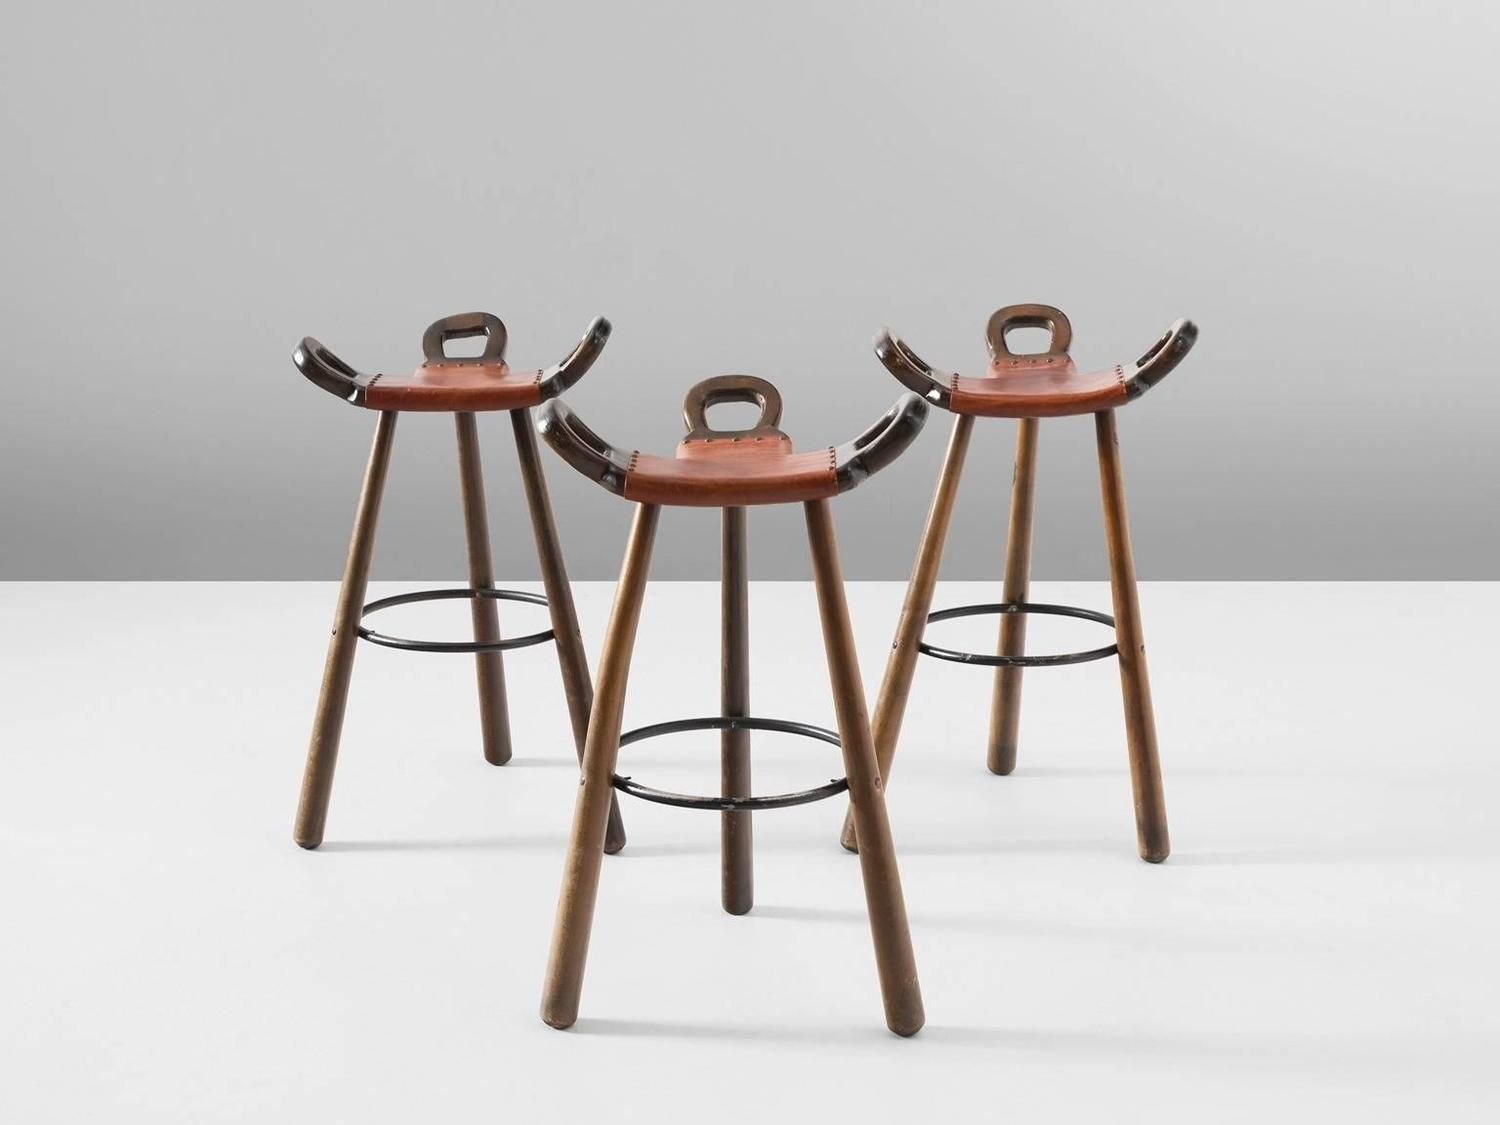 Set of Three 'Marbella' Brutalist Bar Stools with Leather Seating For Sale at 1stdibs